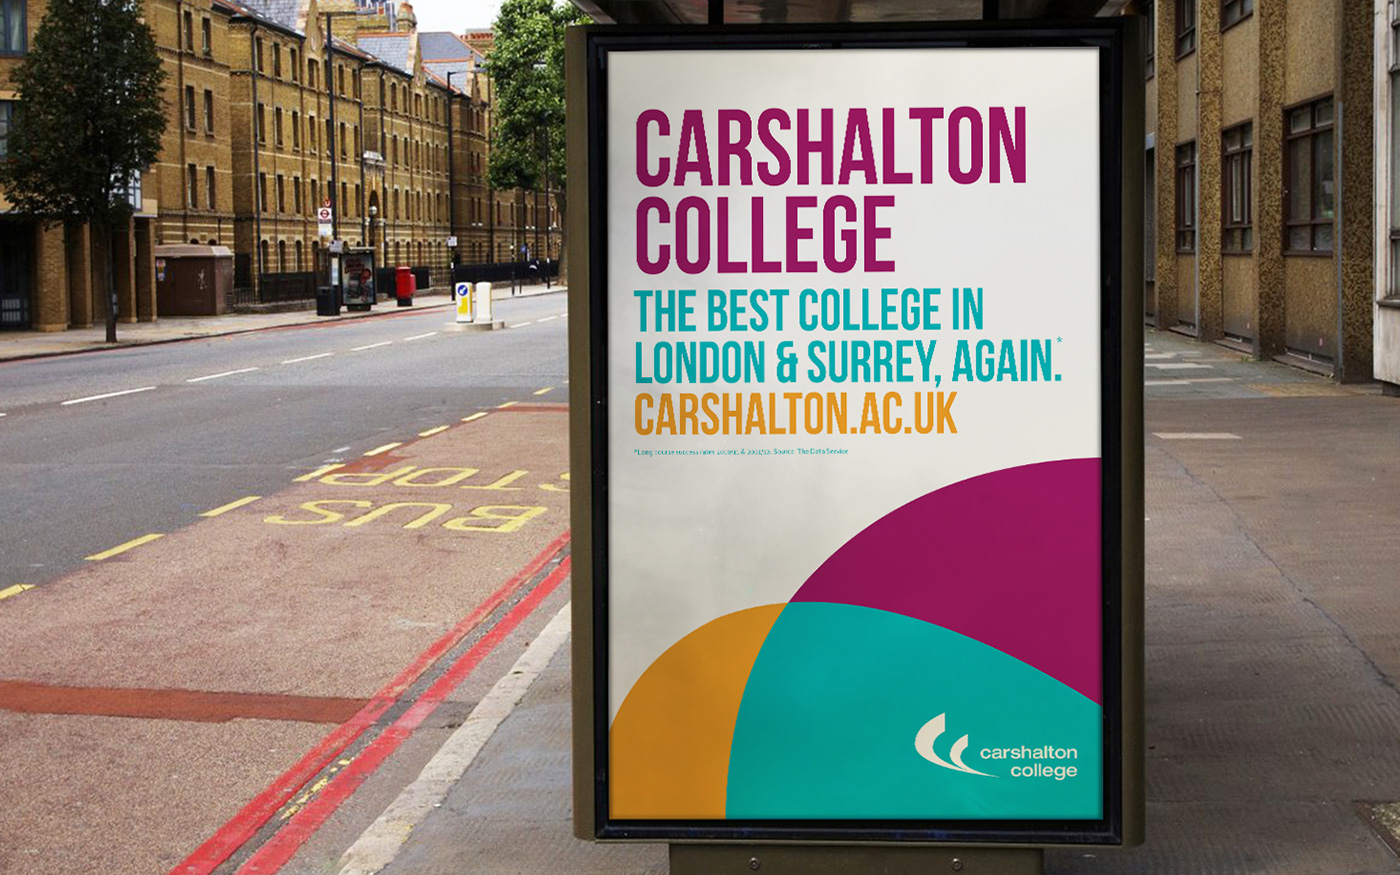 Carshalton College Bus Stop Ad